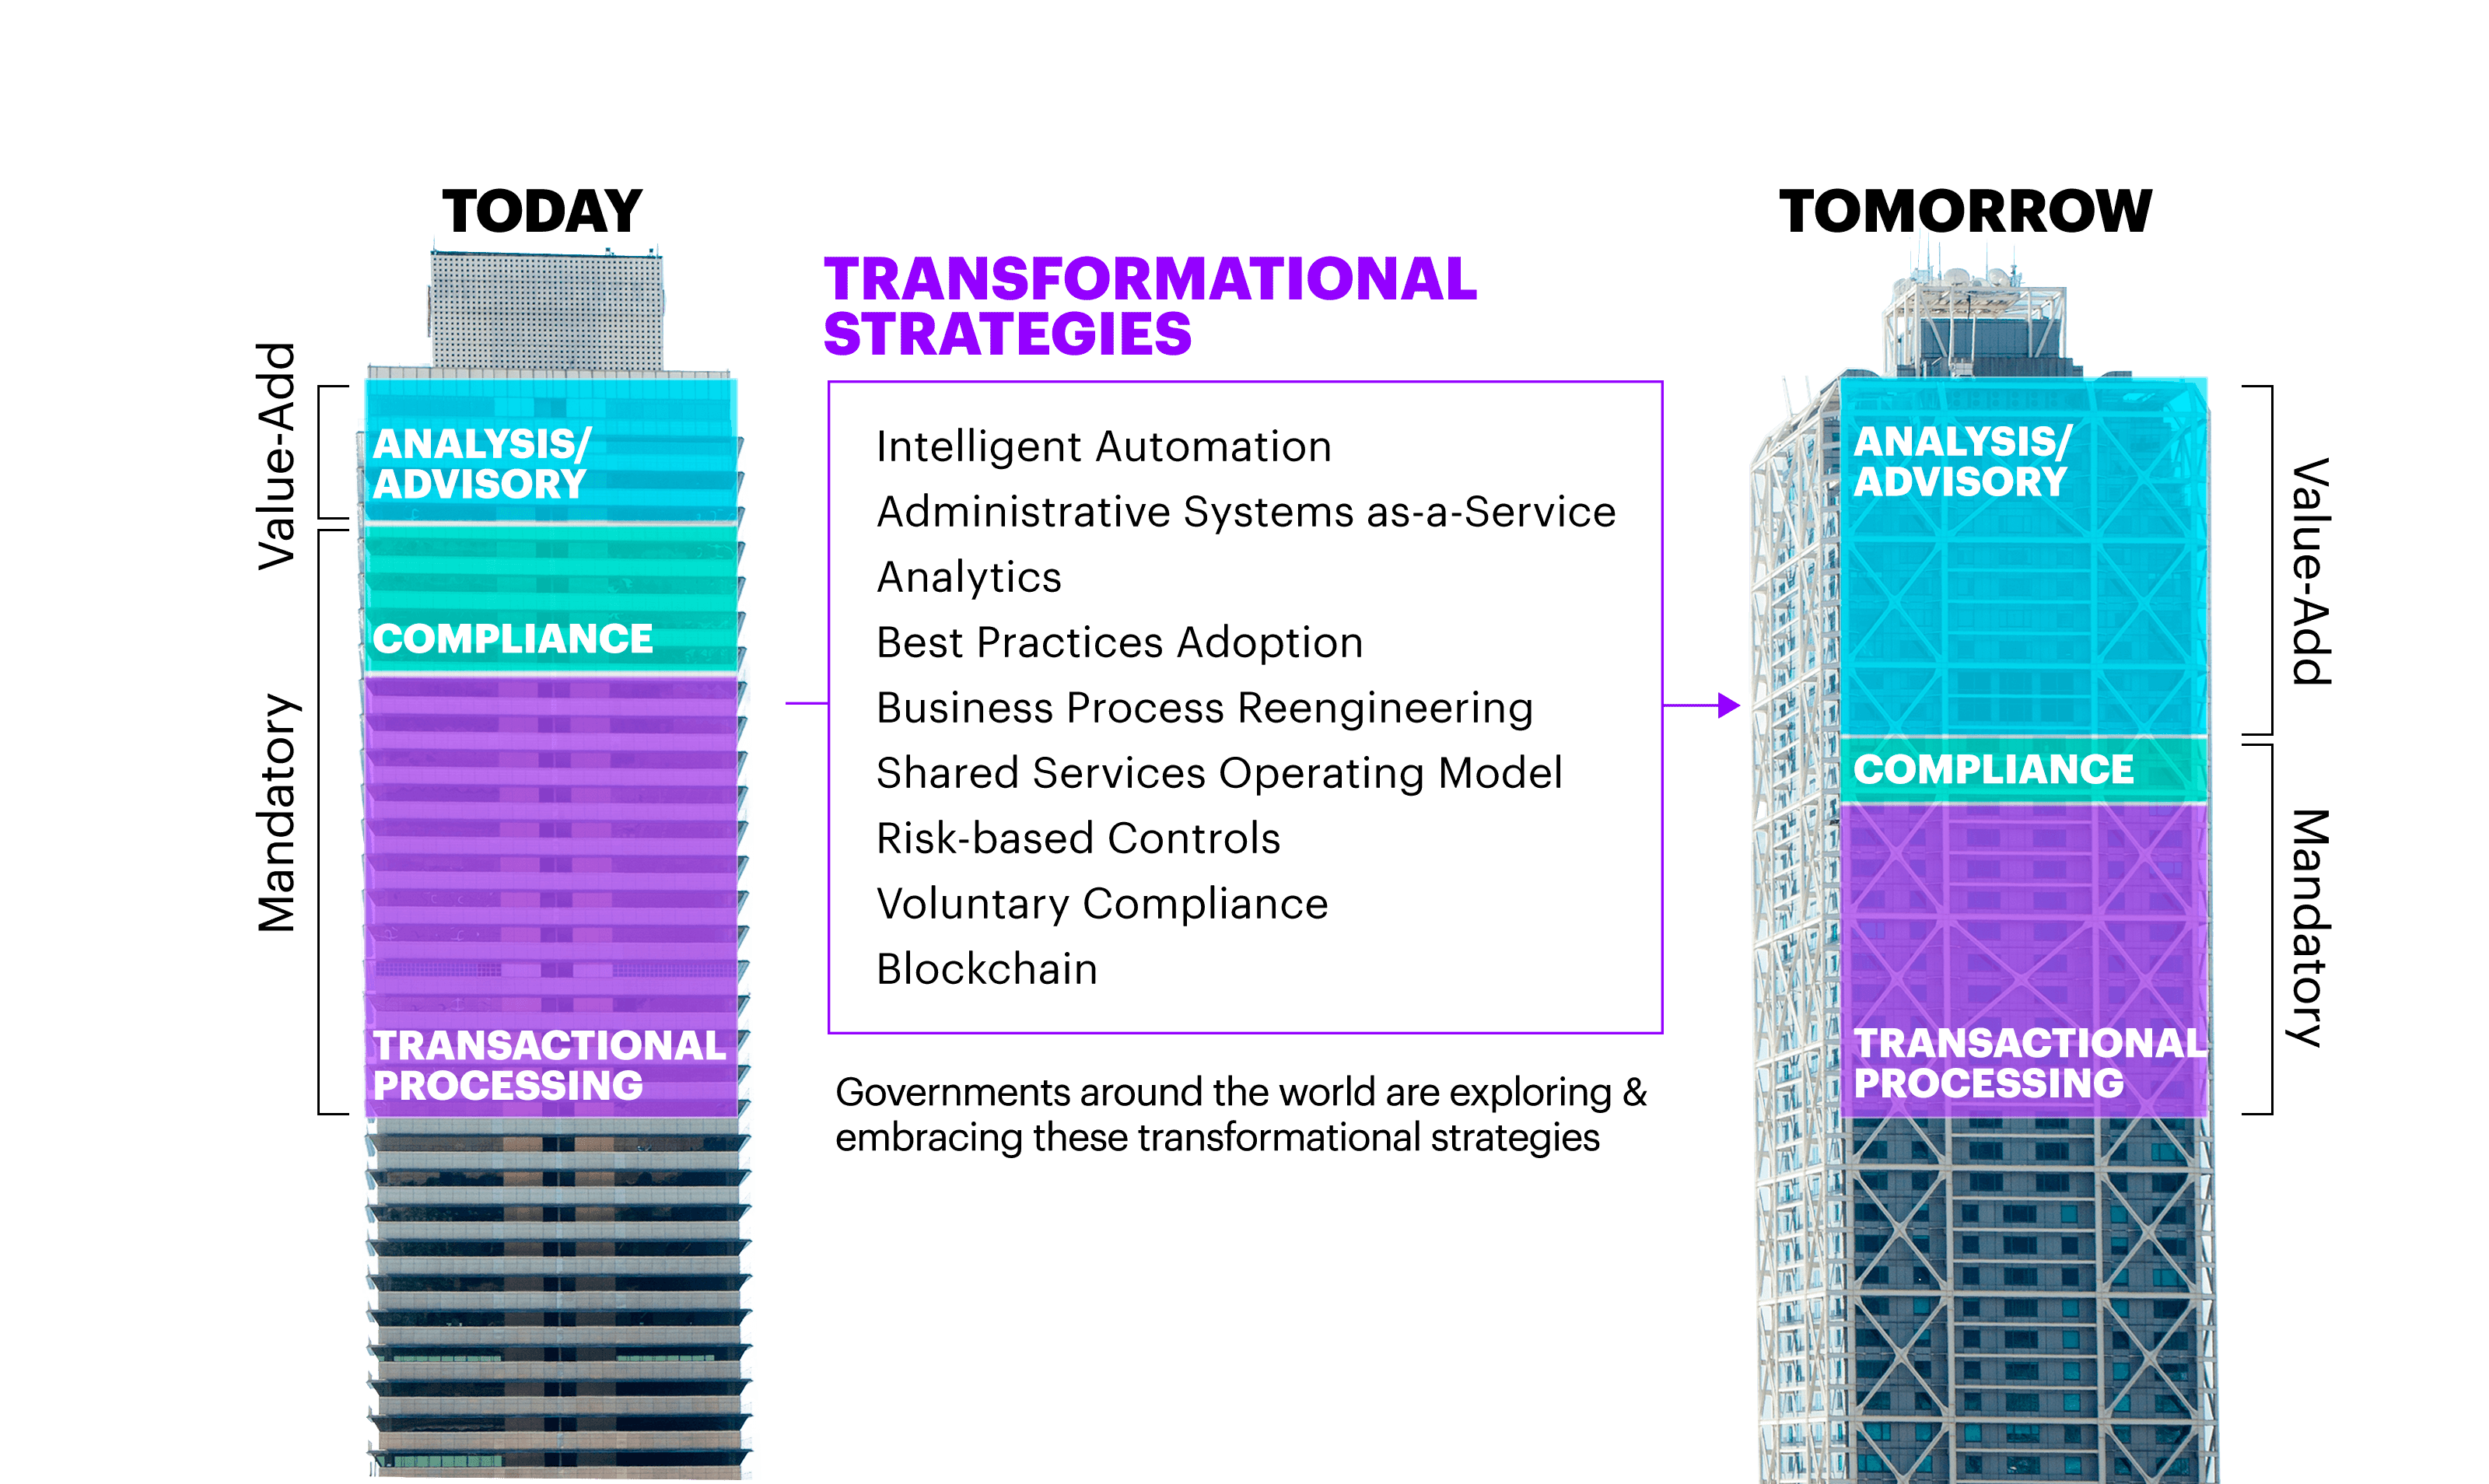 Image of two buildings depict how governments that embrace transformation strategies like intelligent automation, analytics, risk-based controls and blockchain today, can enable more value added analysis and advisory services tomorrow.